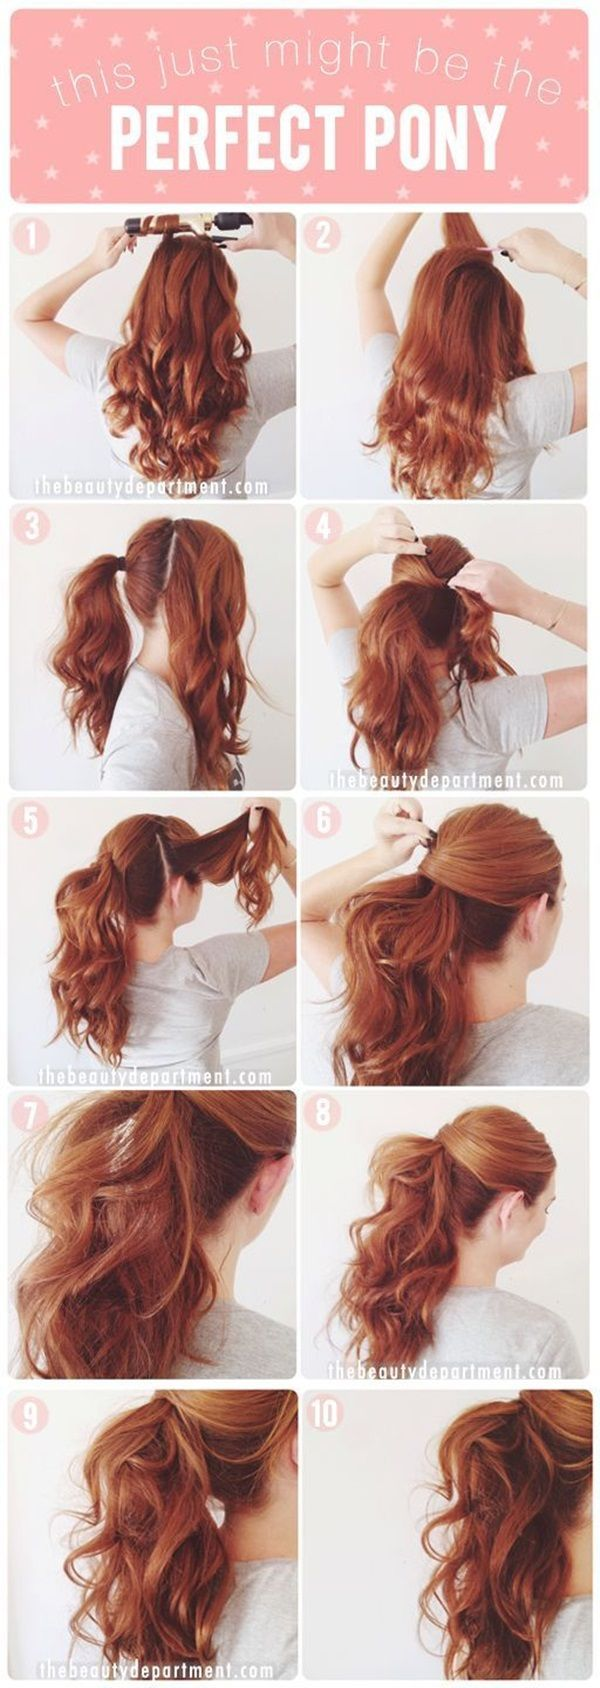 Wondrous 1000 Ideas About Diy Hairstyles On Pinterest Easy Diy Short Hairstyles For Black Women Fulllsitofus